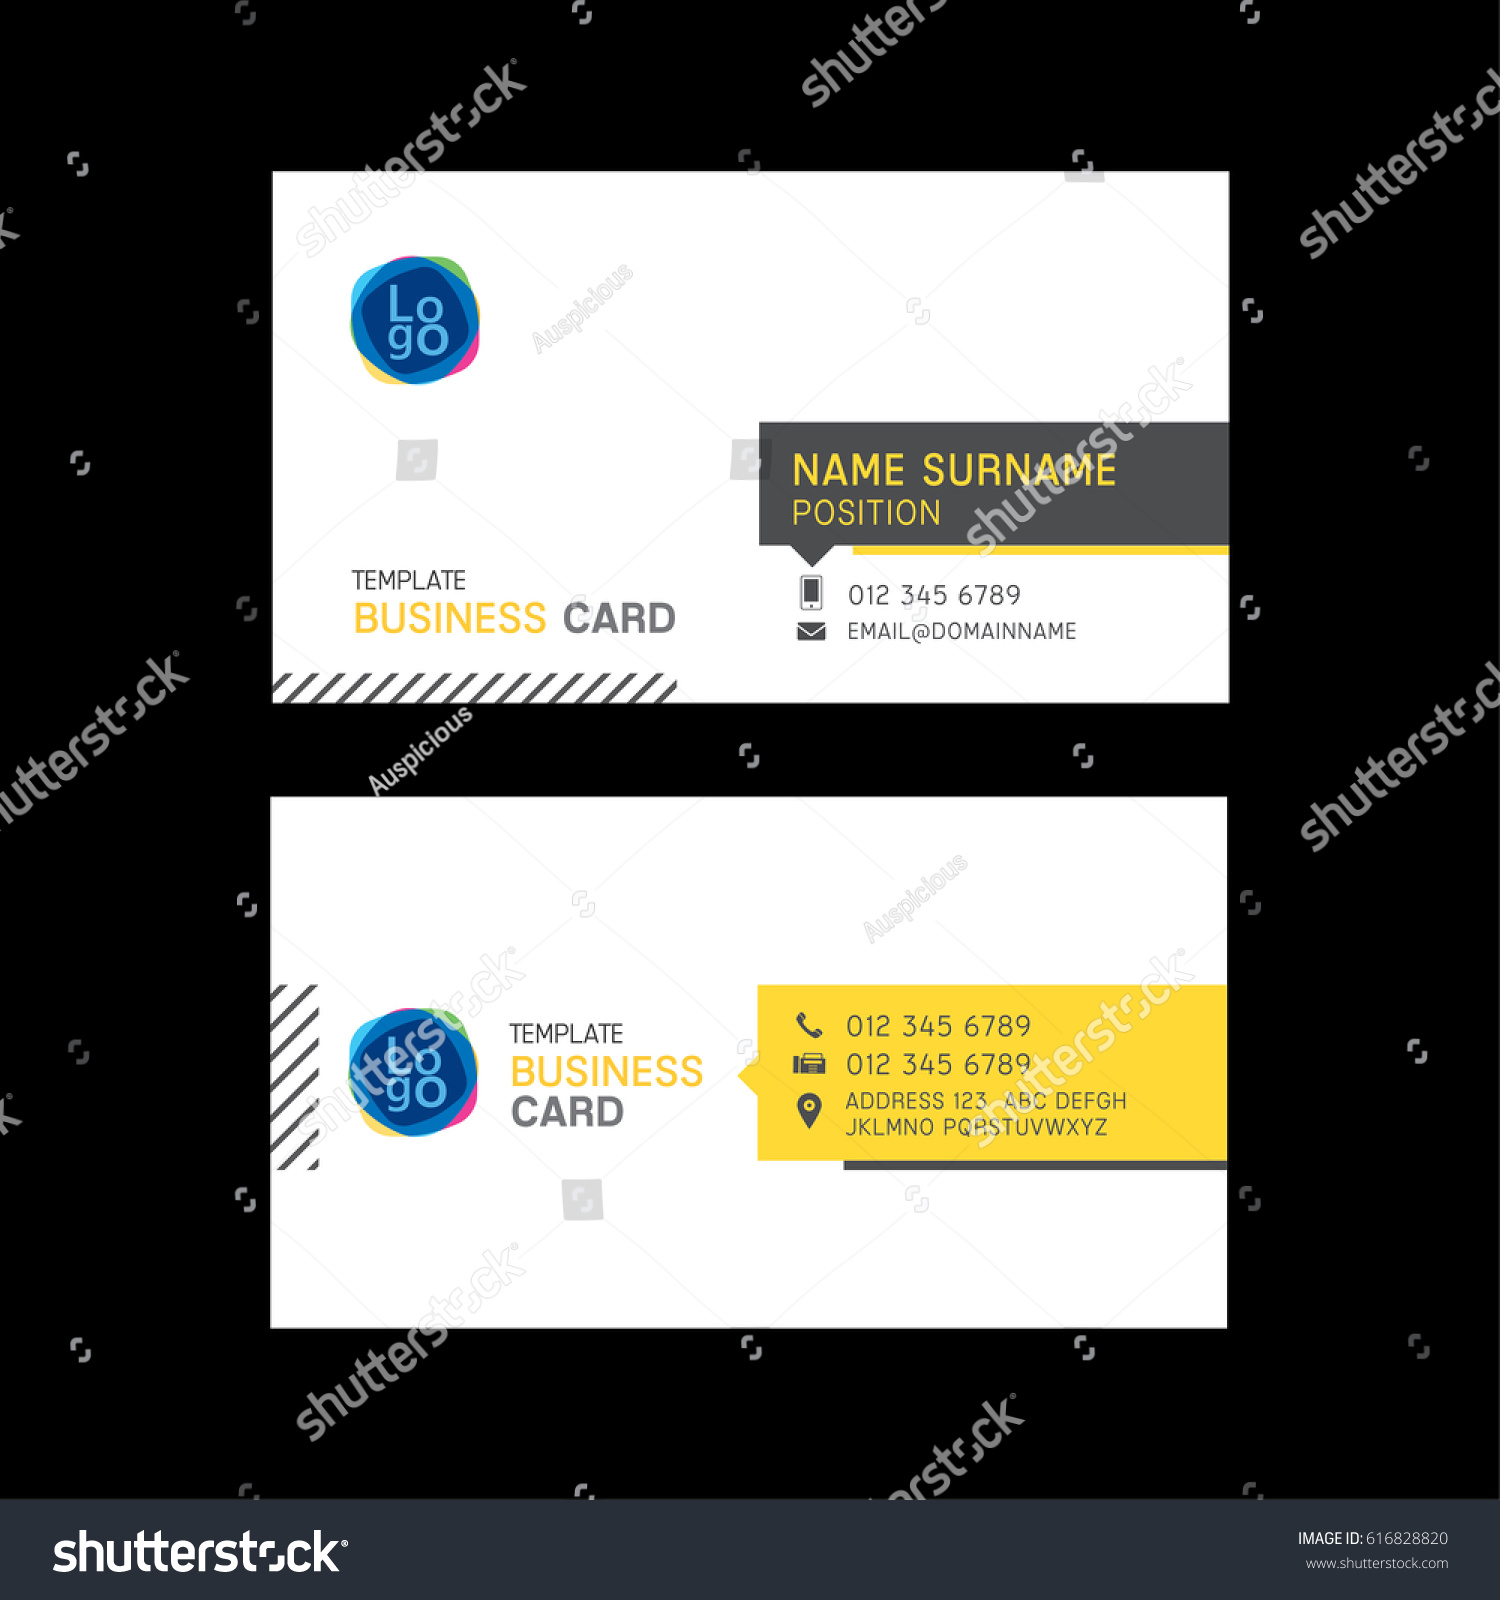 Business Card Template Design Corporate Theme Stock Vector ...